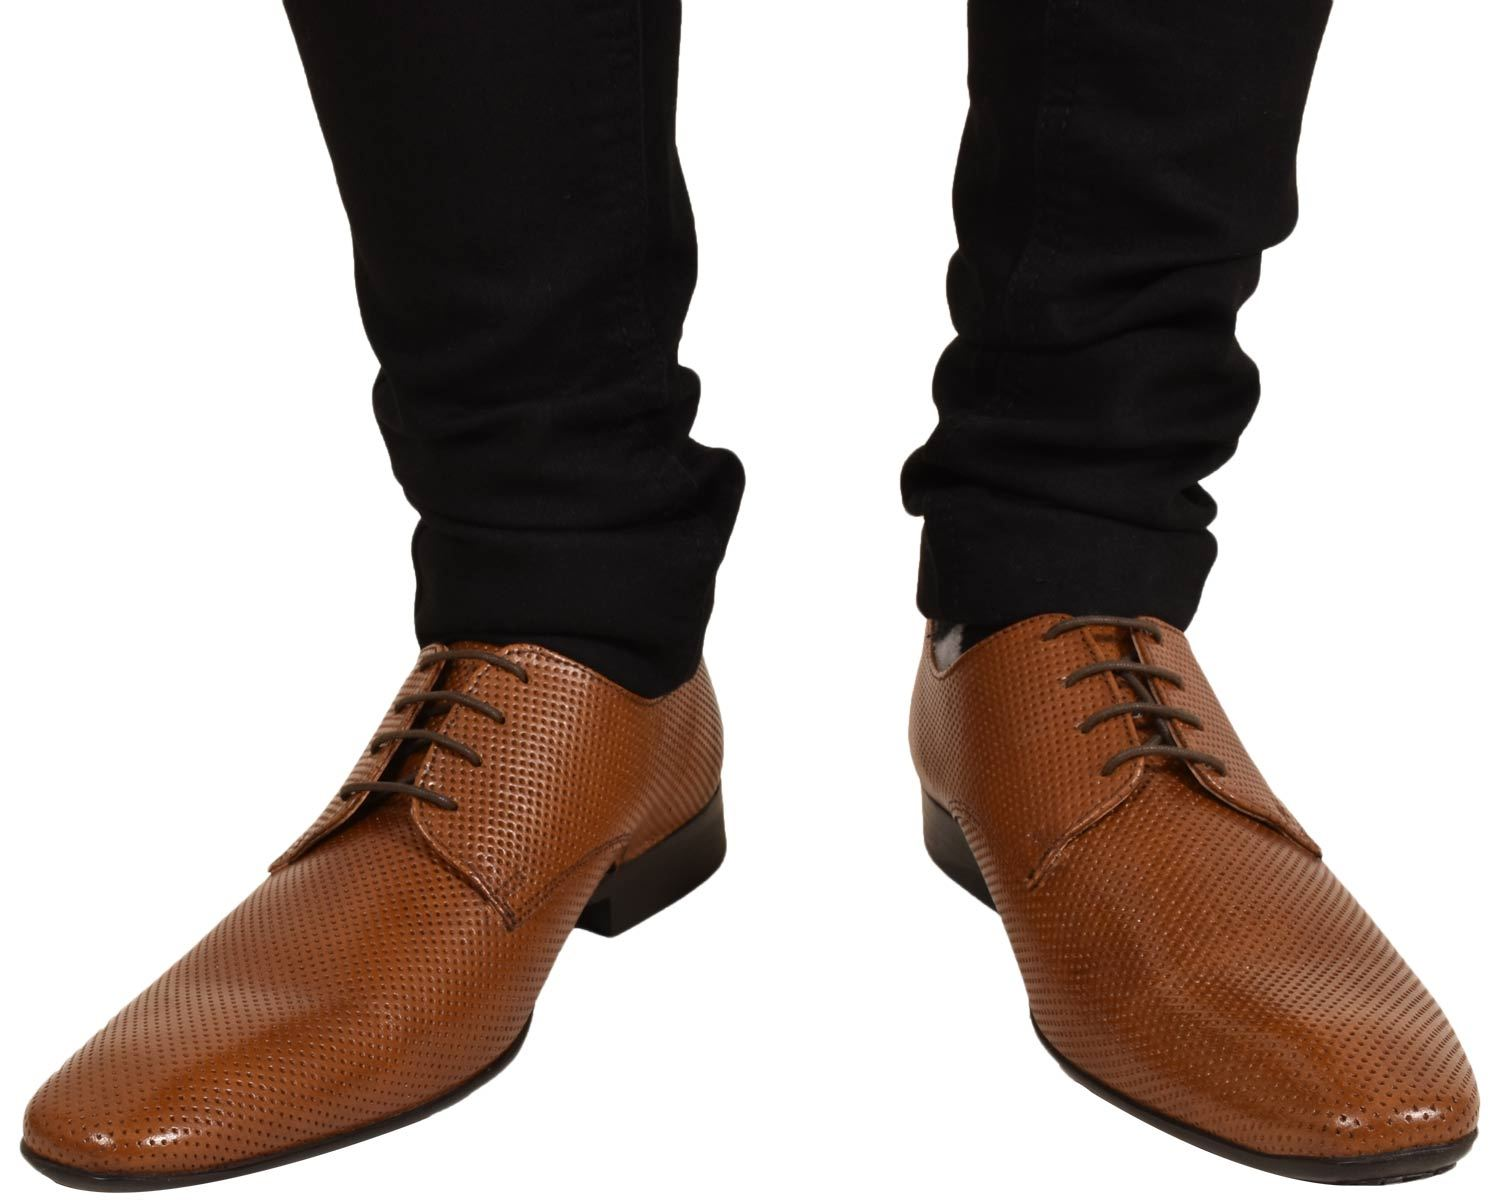 Mens-UK-Style-Leather-Lining-Formal-Office-Wedding-Smart-Work-Brogue-Shoes thumbnail 17